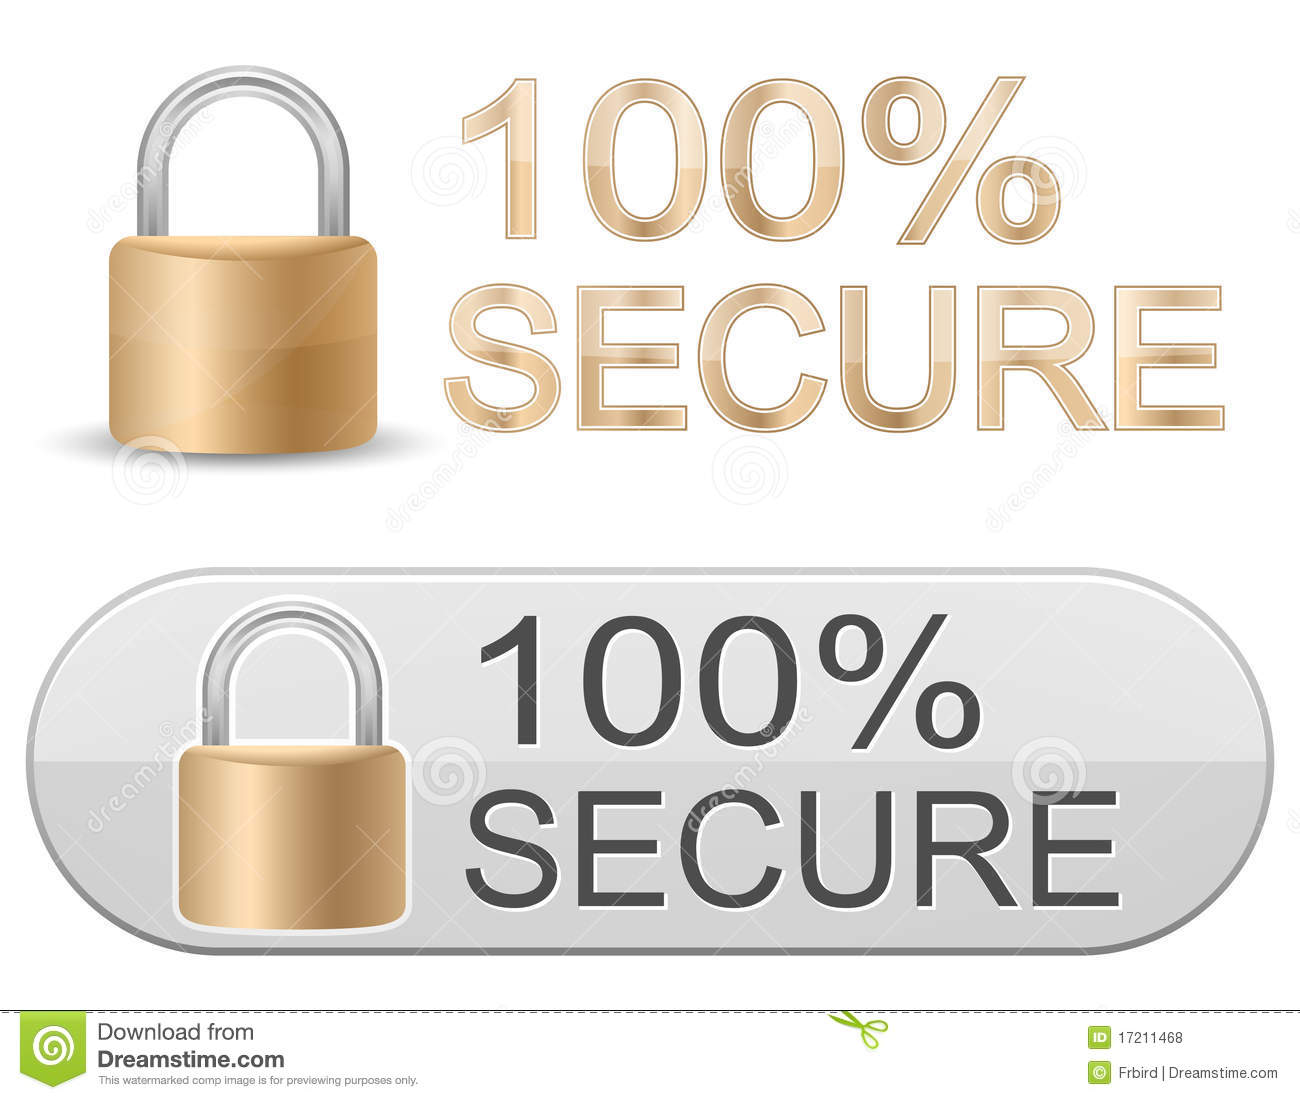 Metallic Padlock Ssl Certificate Signs Stock Vector Illustration